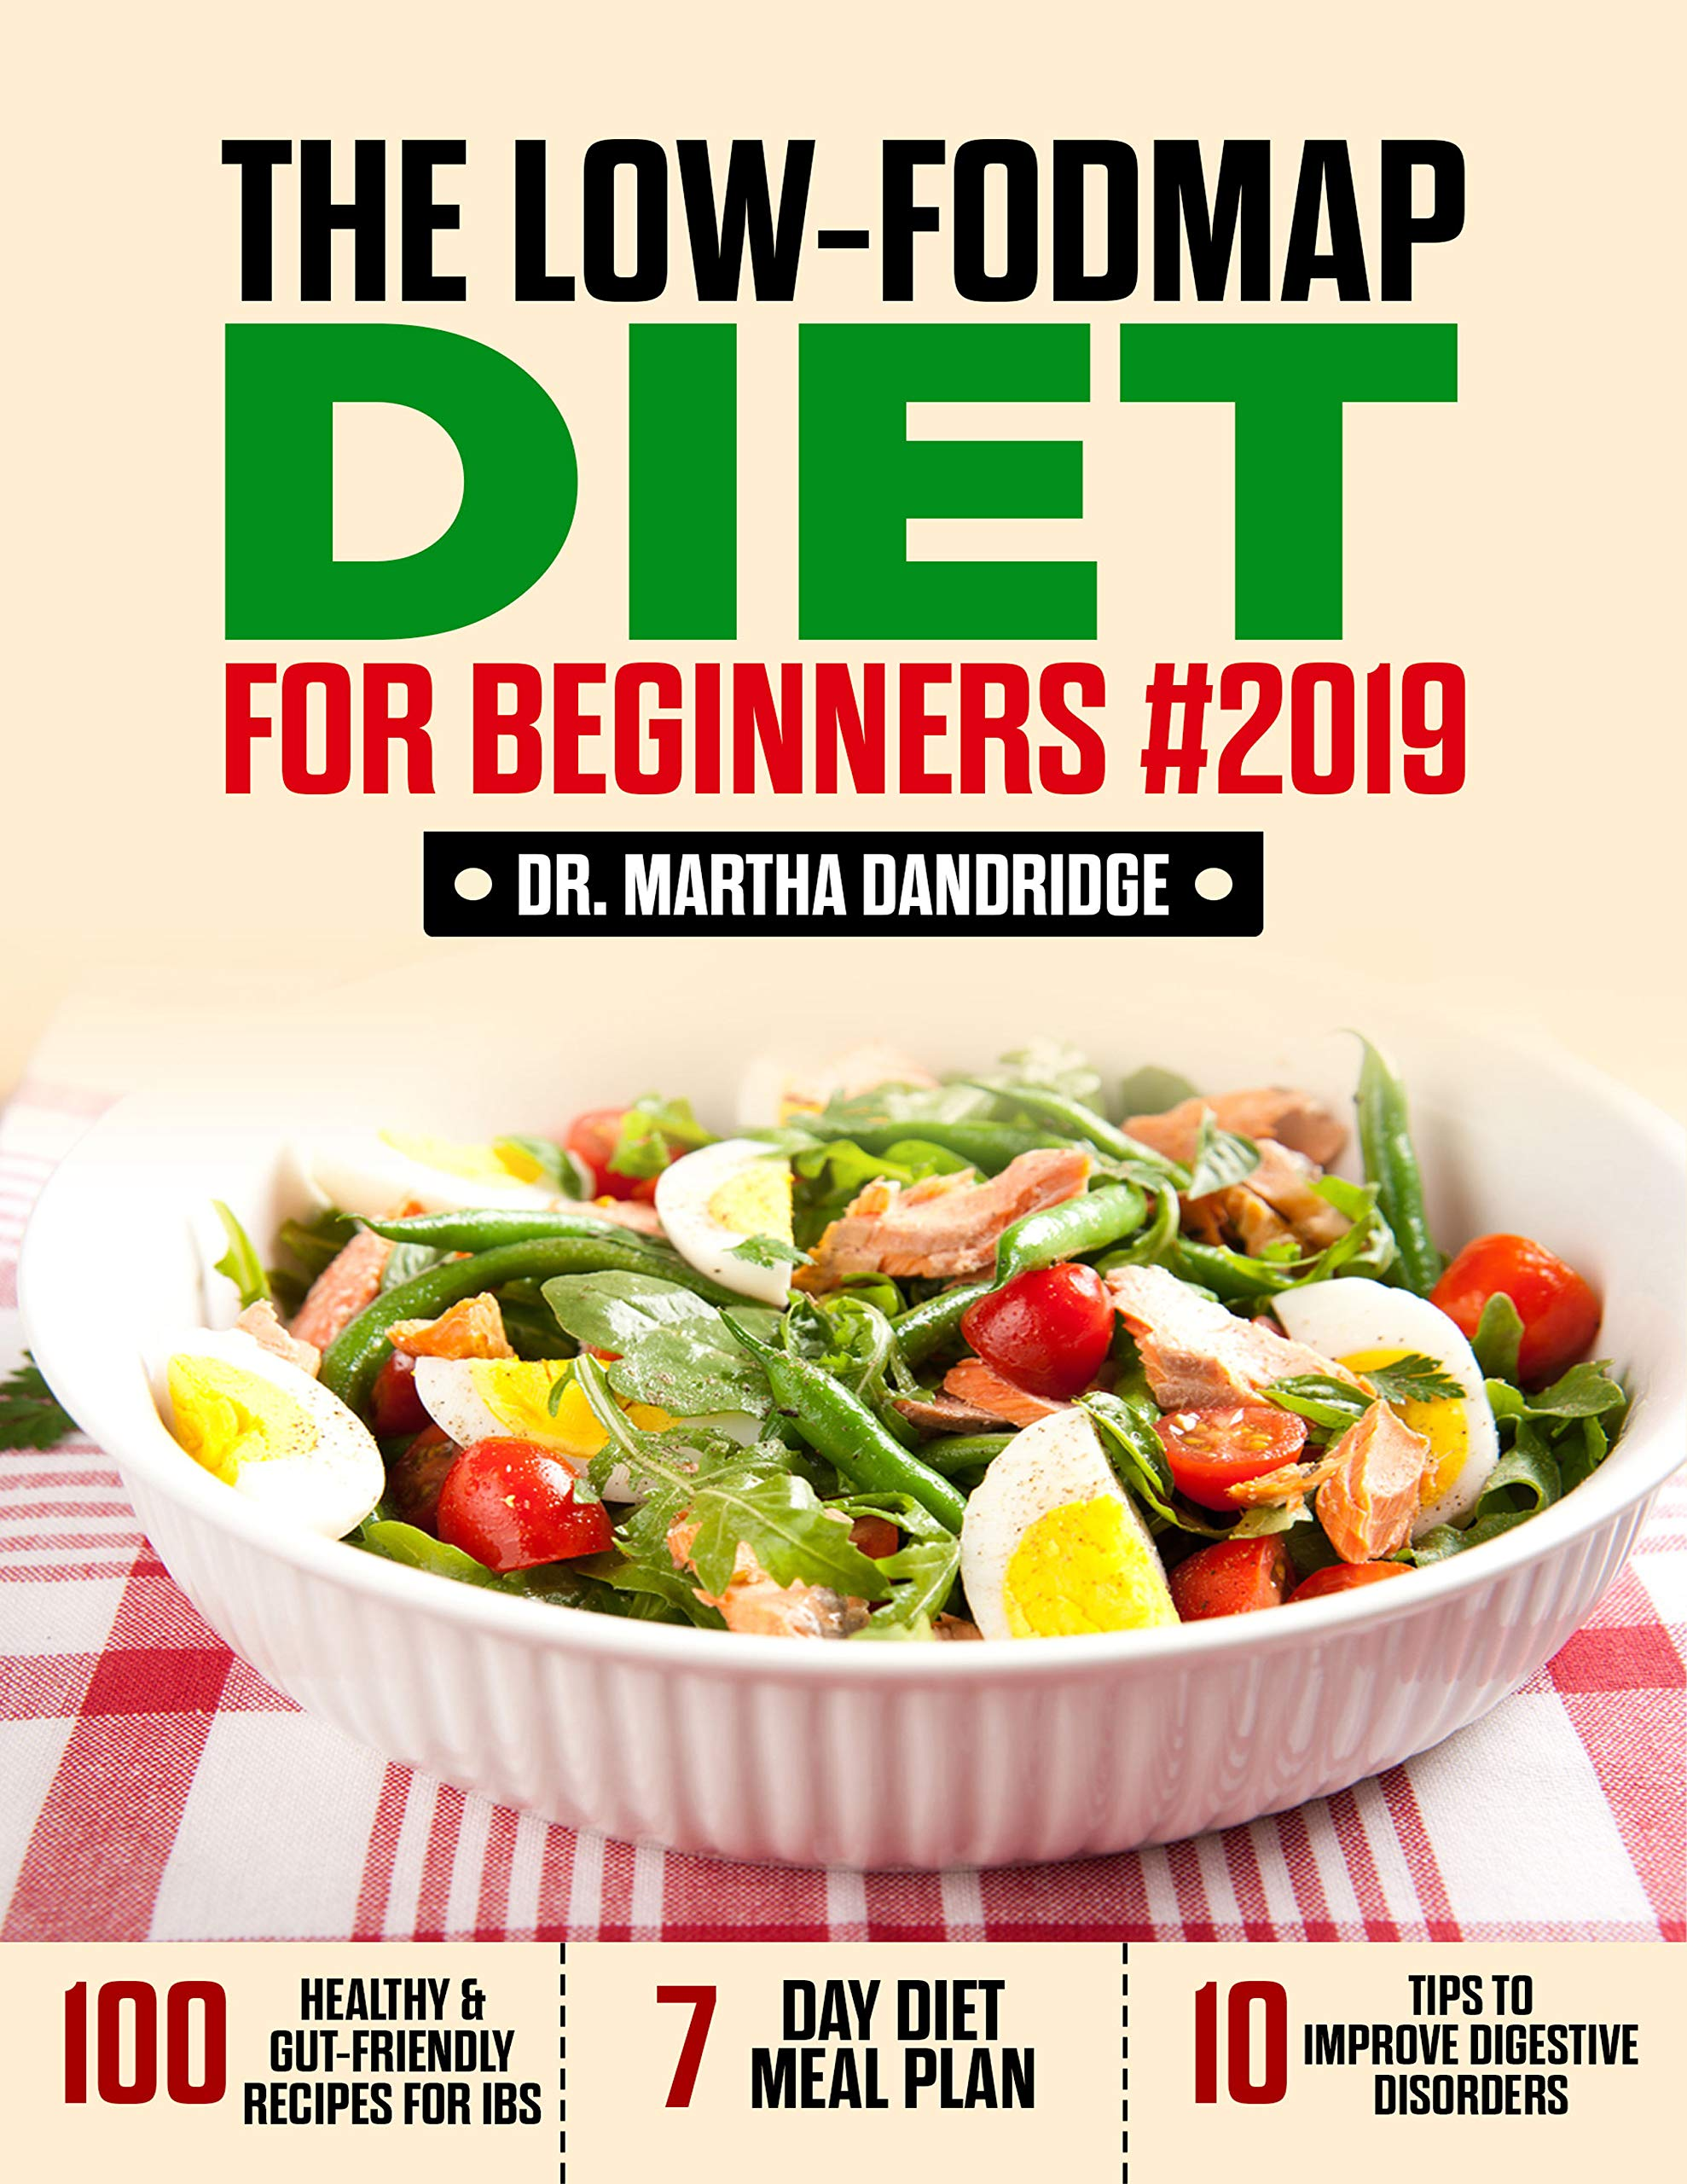 The LOW FODMAP Diet For Beginners  2019  100 Healthy And Gut Friendly Recipes For IBS 7 Day Diet Meal Plan And 10 Tips To Improve Digestive Disorders  English Edition